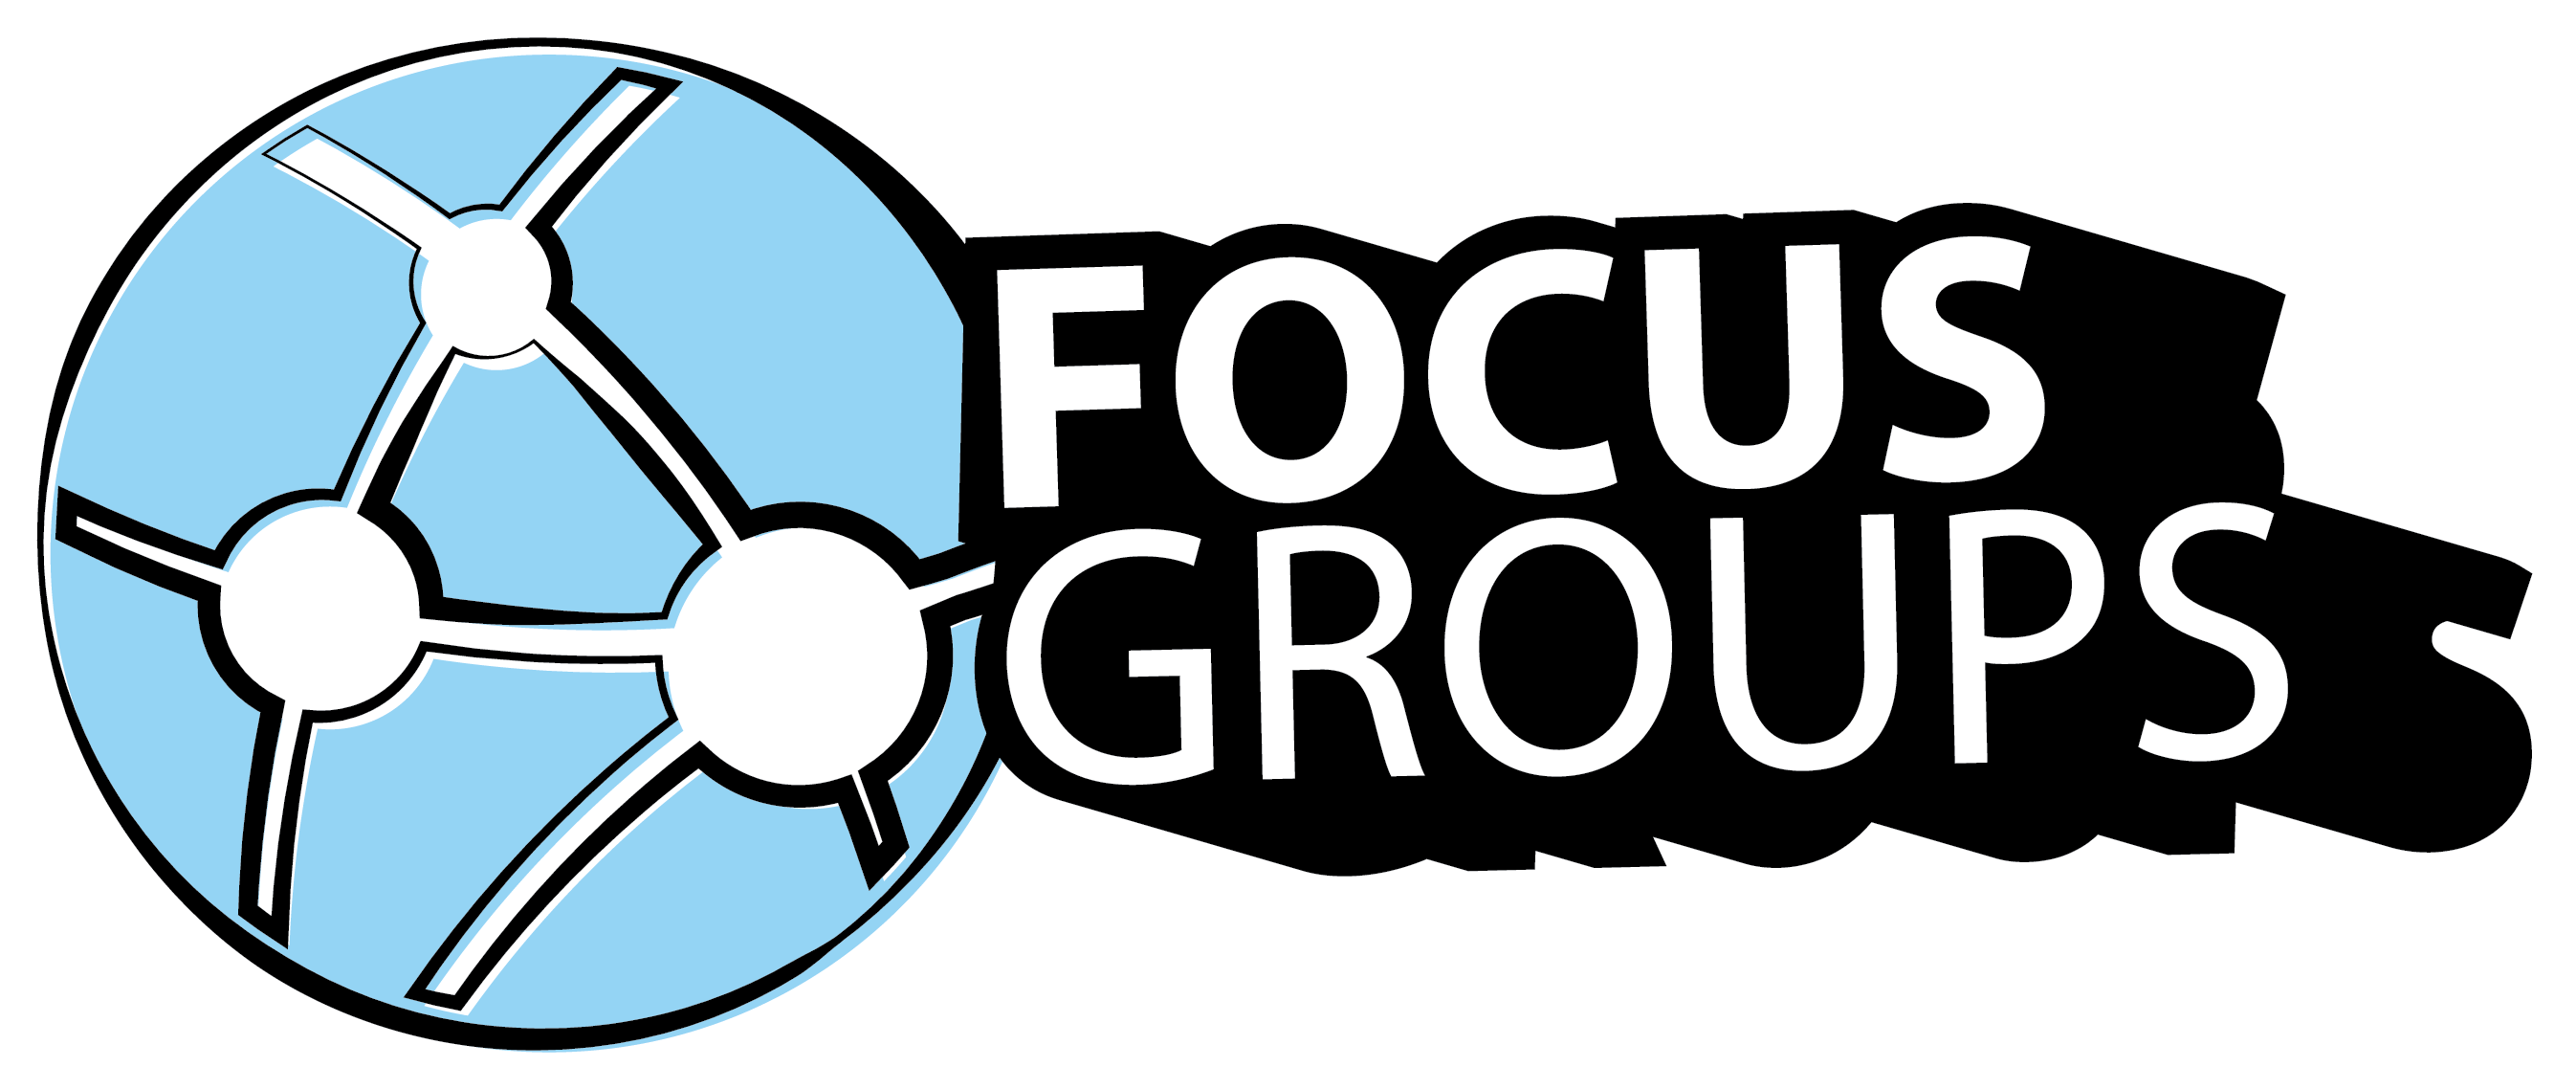 Norma group clipart vector library library Focus - - Focus Groups Logo , Transparent Cartoon - Jing.fm vector library library